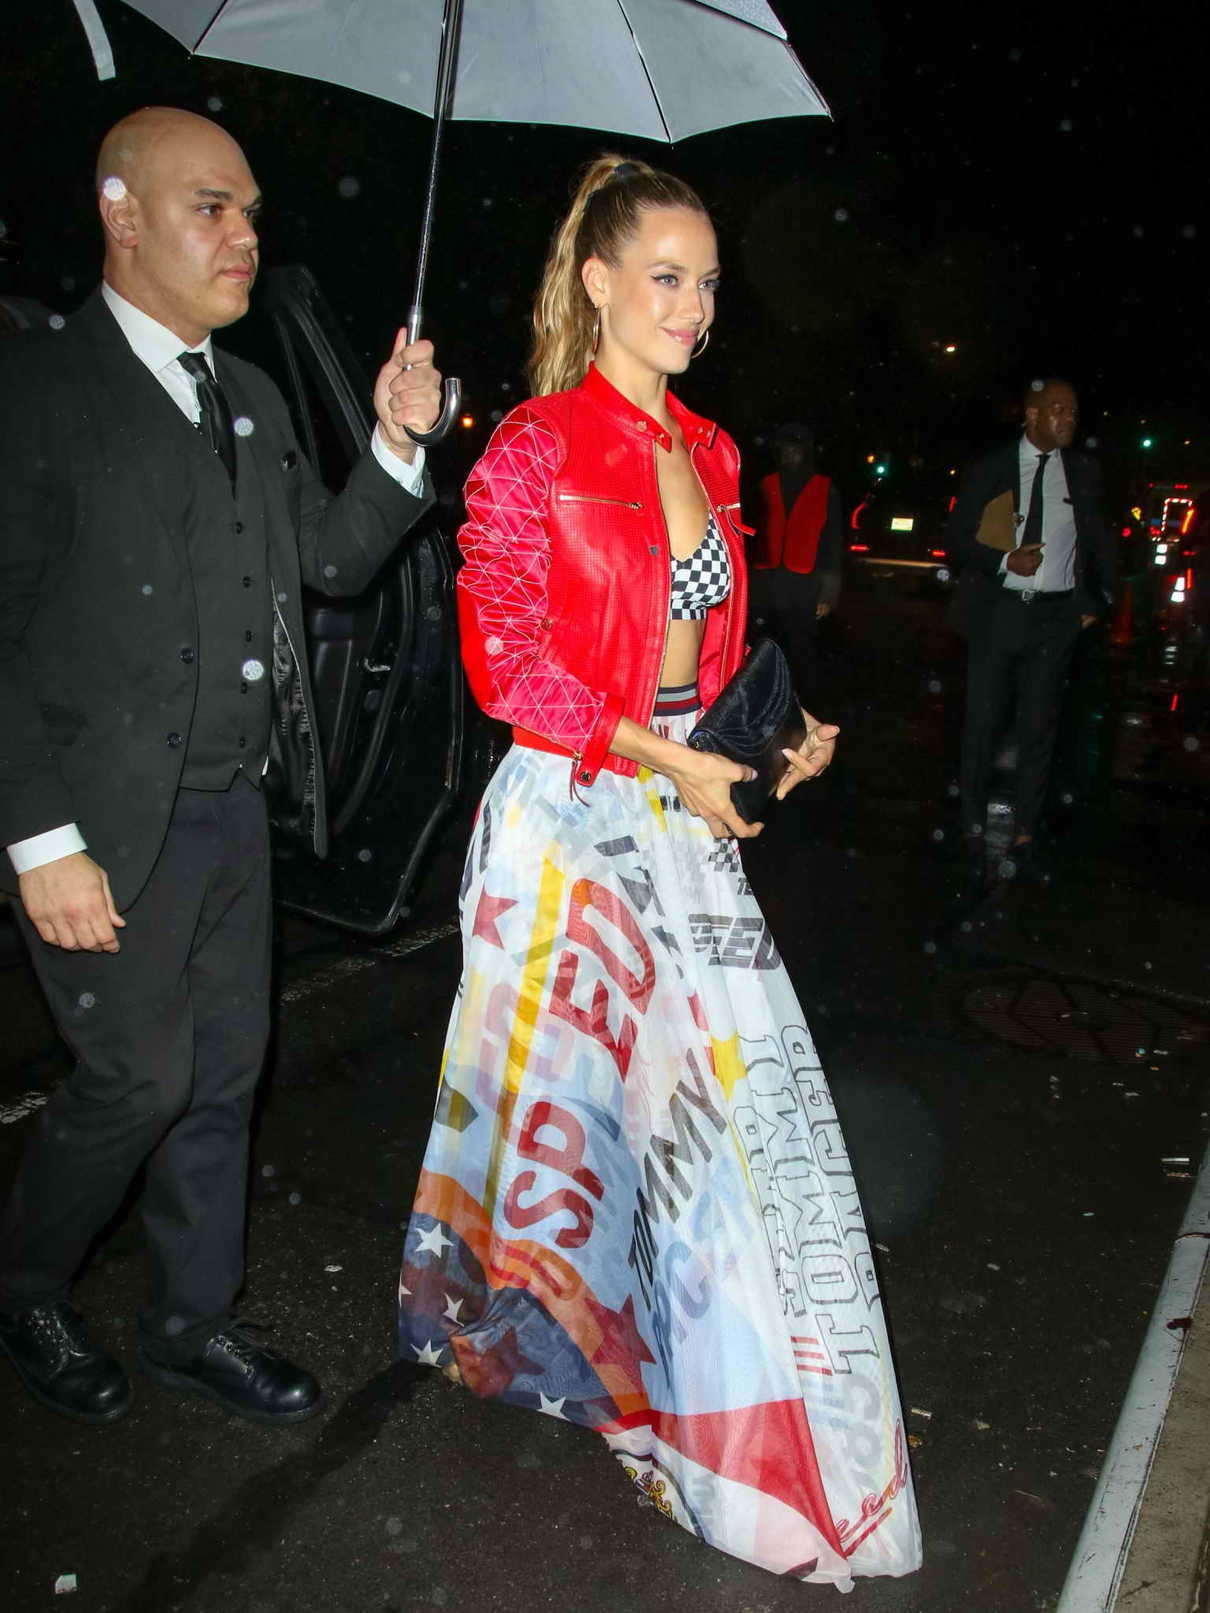 eb9ed4f6d40 Hannah Ferguson Arrives at Tommy Hilfiger and Lewis Hamilton Launch Party  During New York Fashion Week in NYC 09 10 2018-1